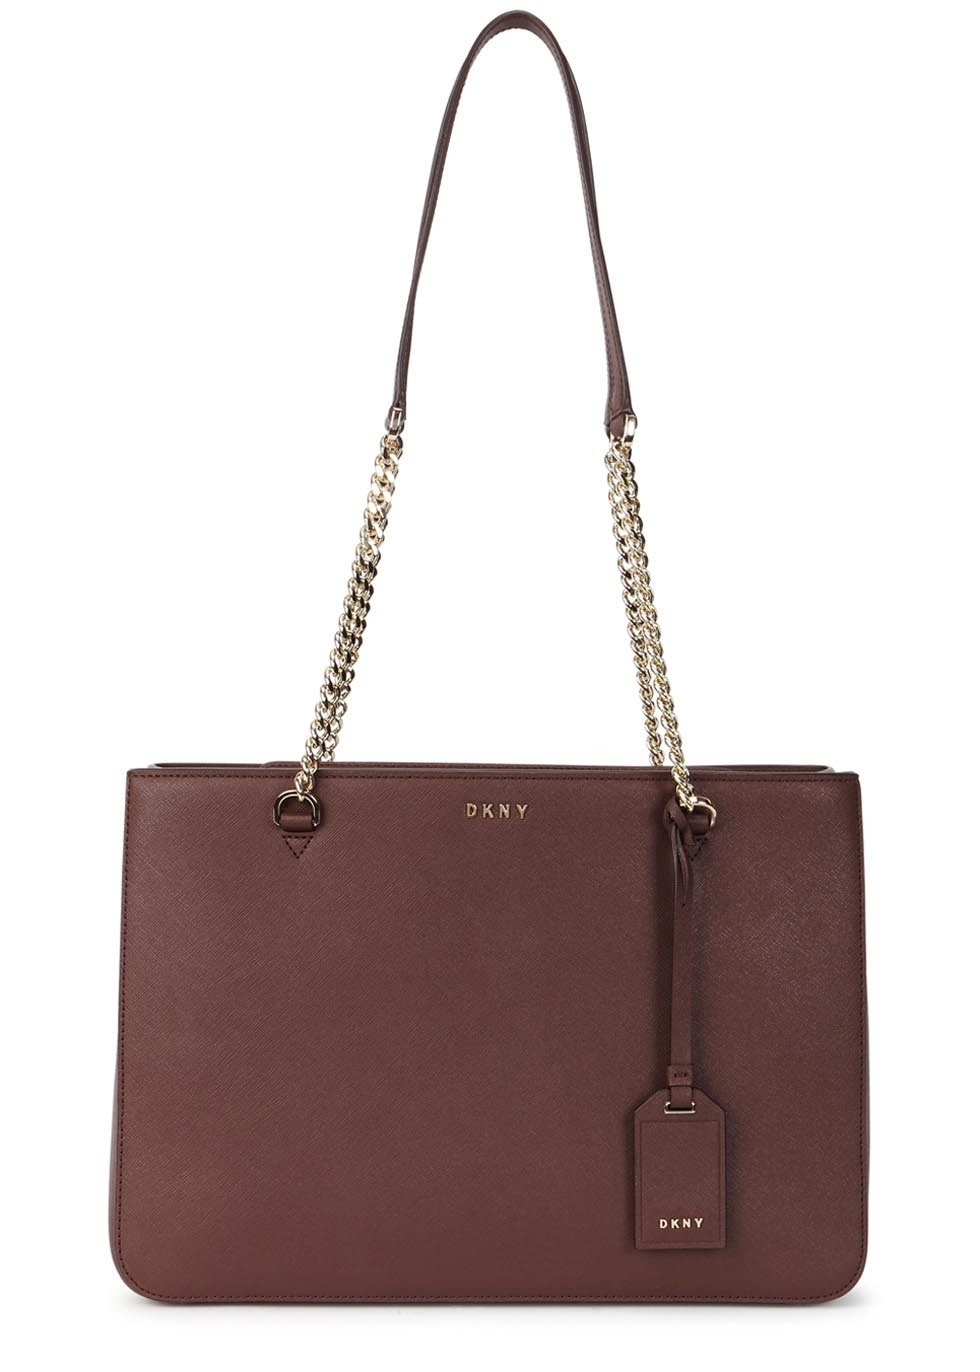 Bryant Park Burgundy Leather Shoulder Bag - predominant colour: tan; occasions: casual; type of pattern: standard; style: tote; length: shoulder (tucks under arm); size: standard; material: leather; pattern: plain; finish: plain; embellishment: chain/metal; season: s/s 2016; wardrobe: highlight